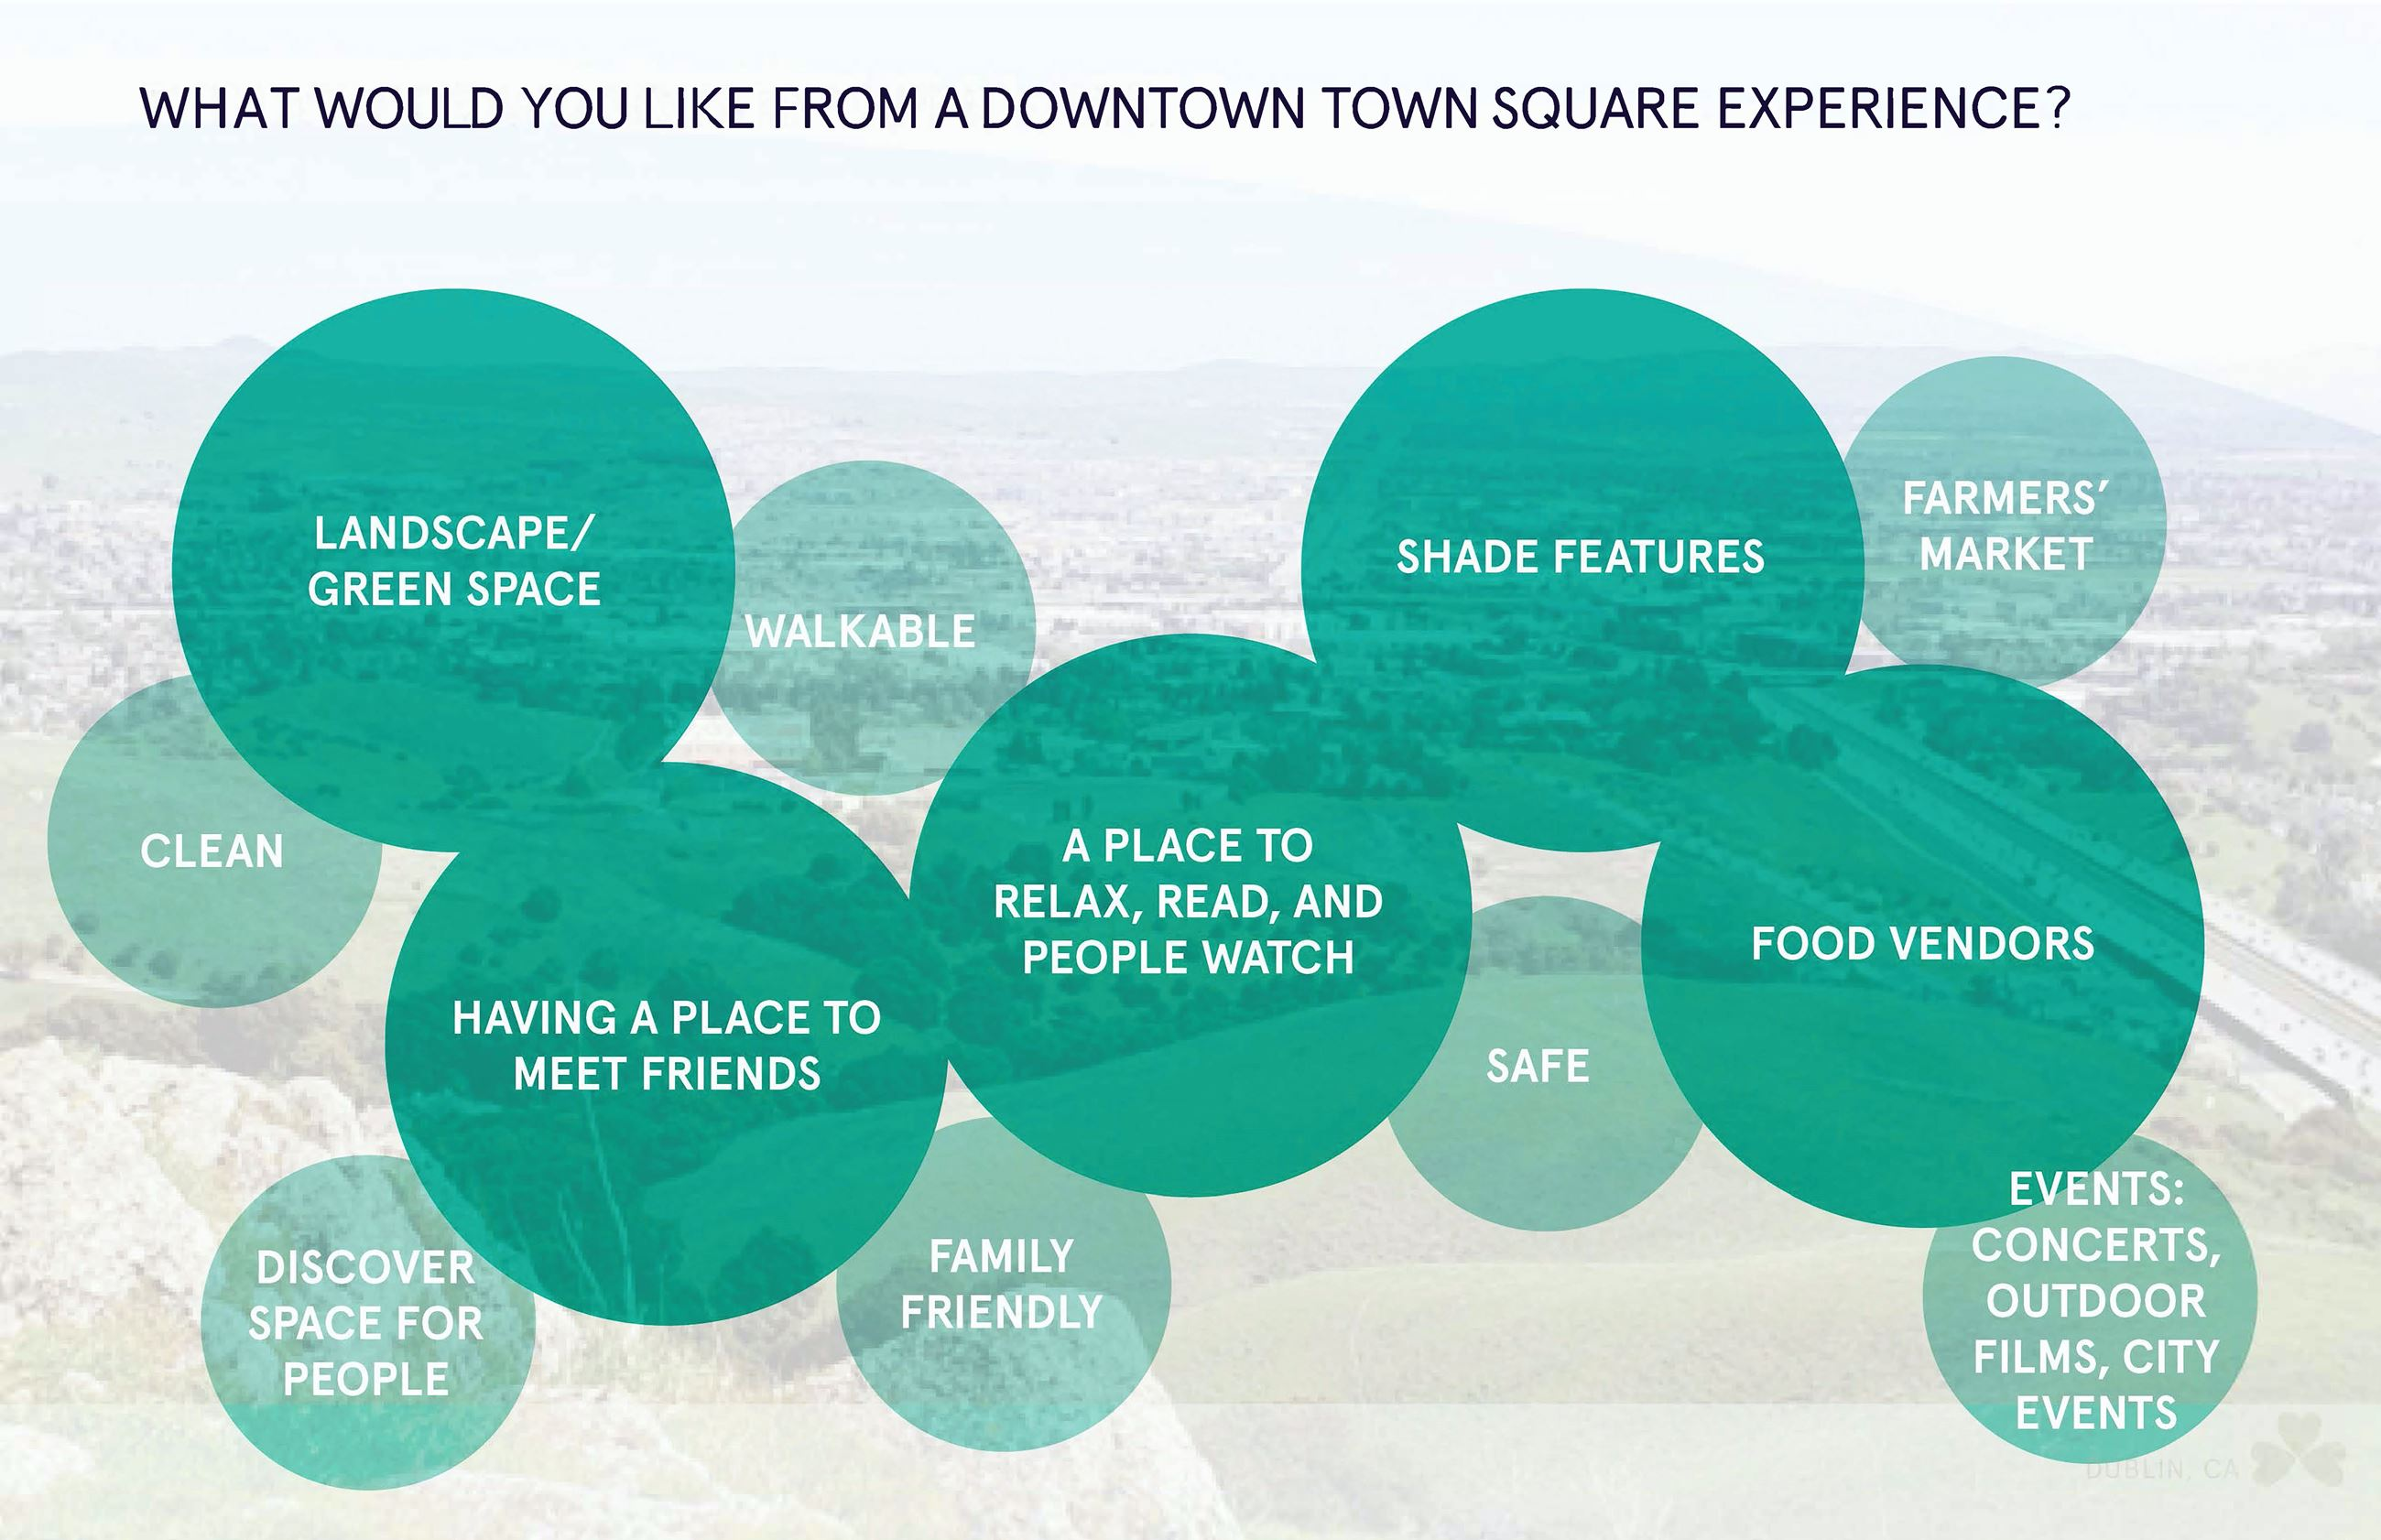 What would you like from a Downtown Town Square experience? More emphasis: Landscape/green space - H